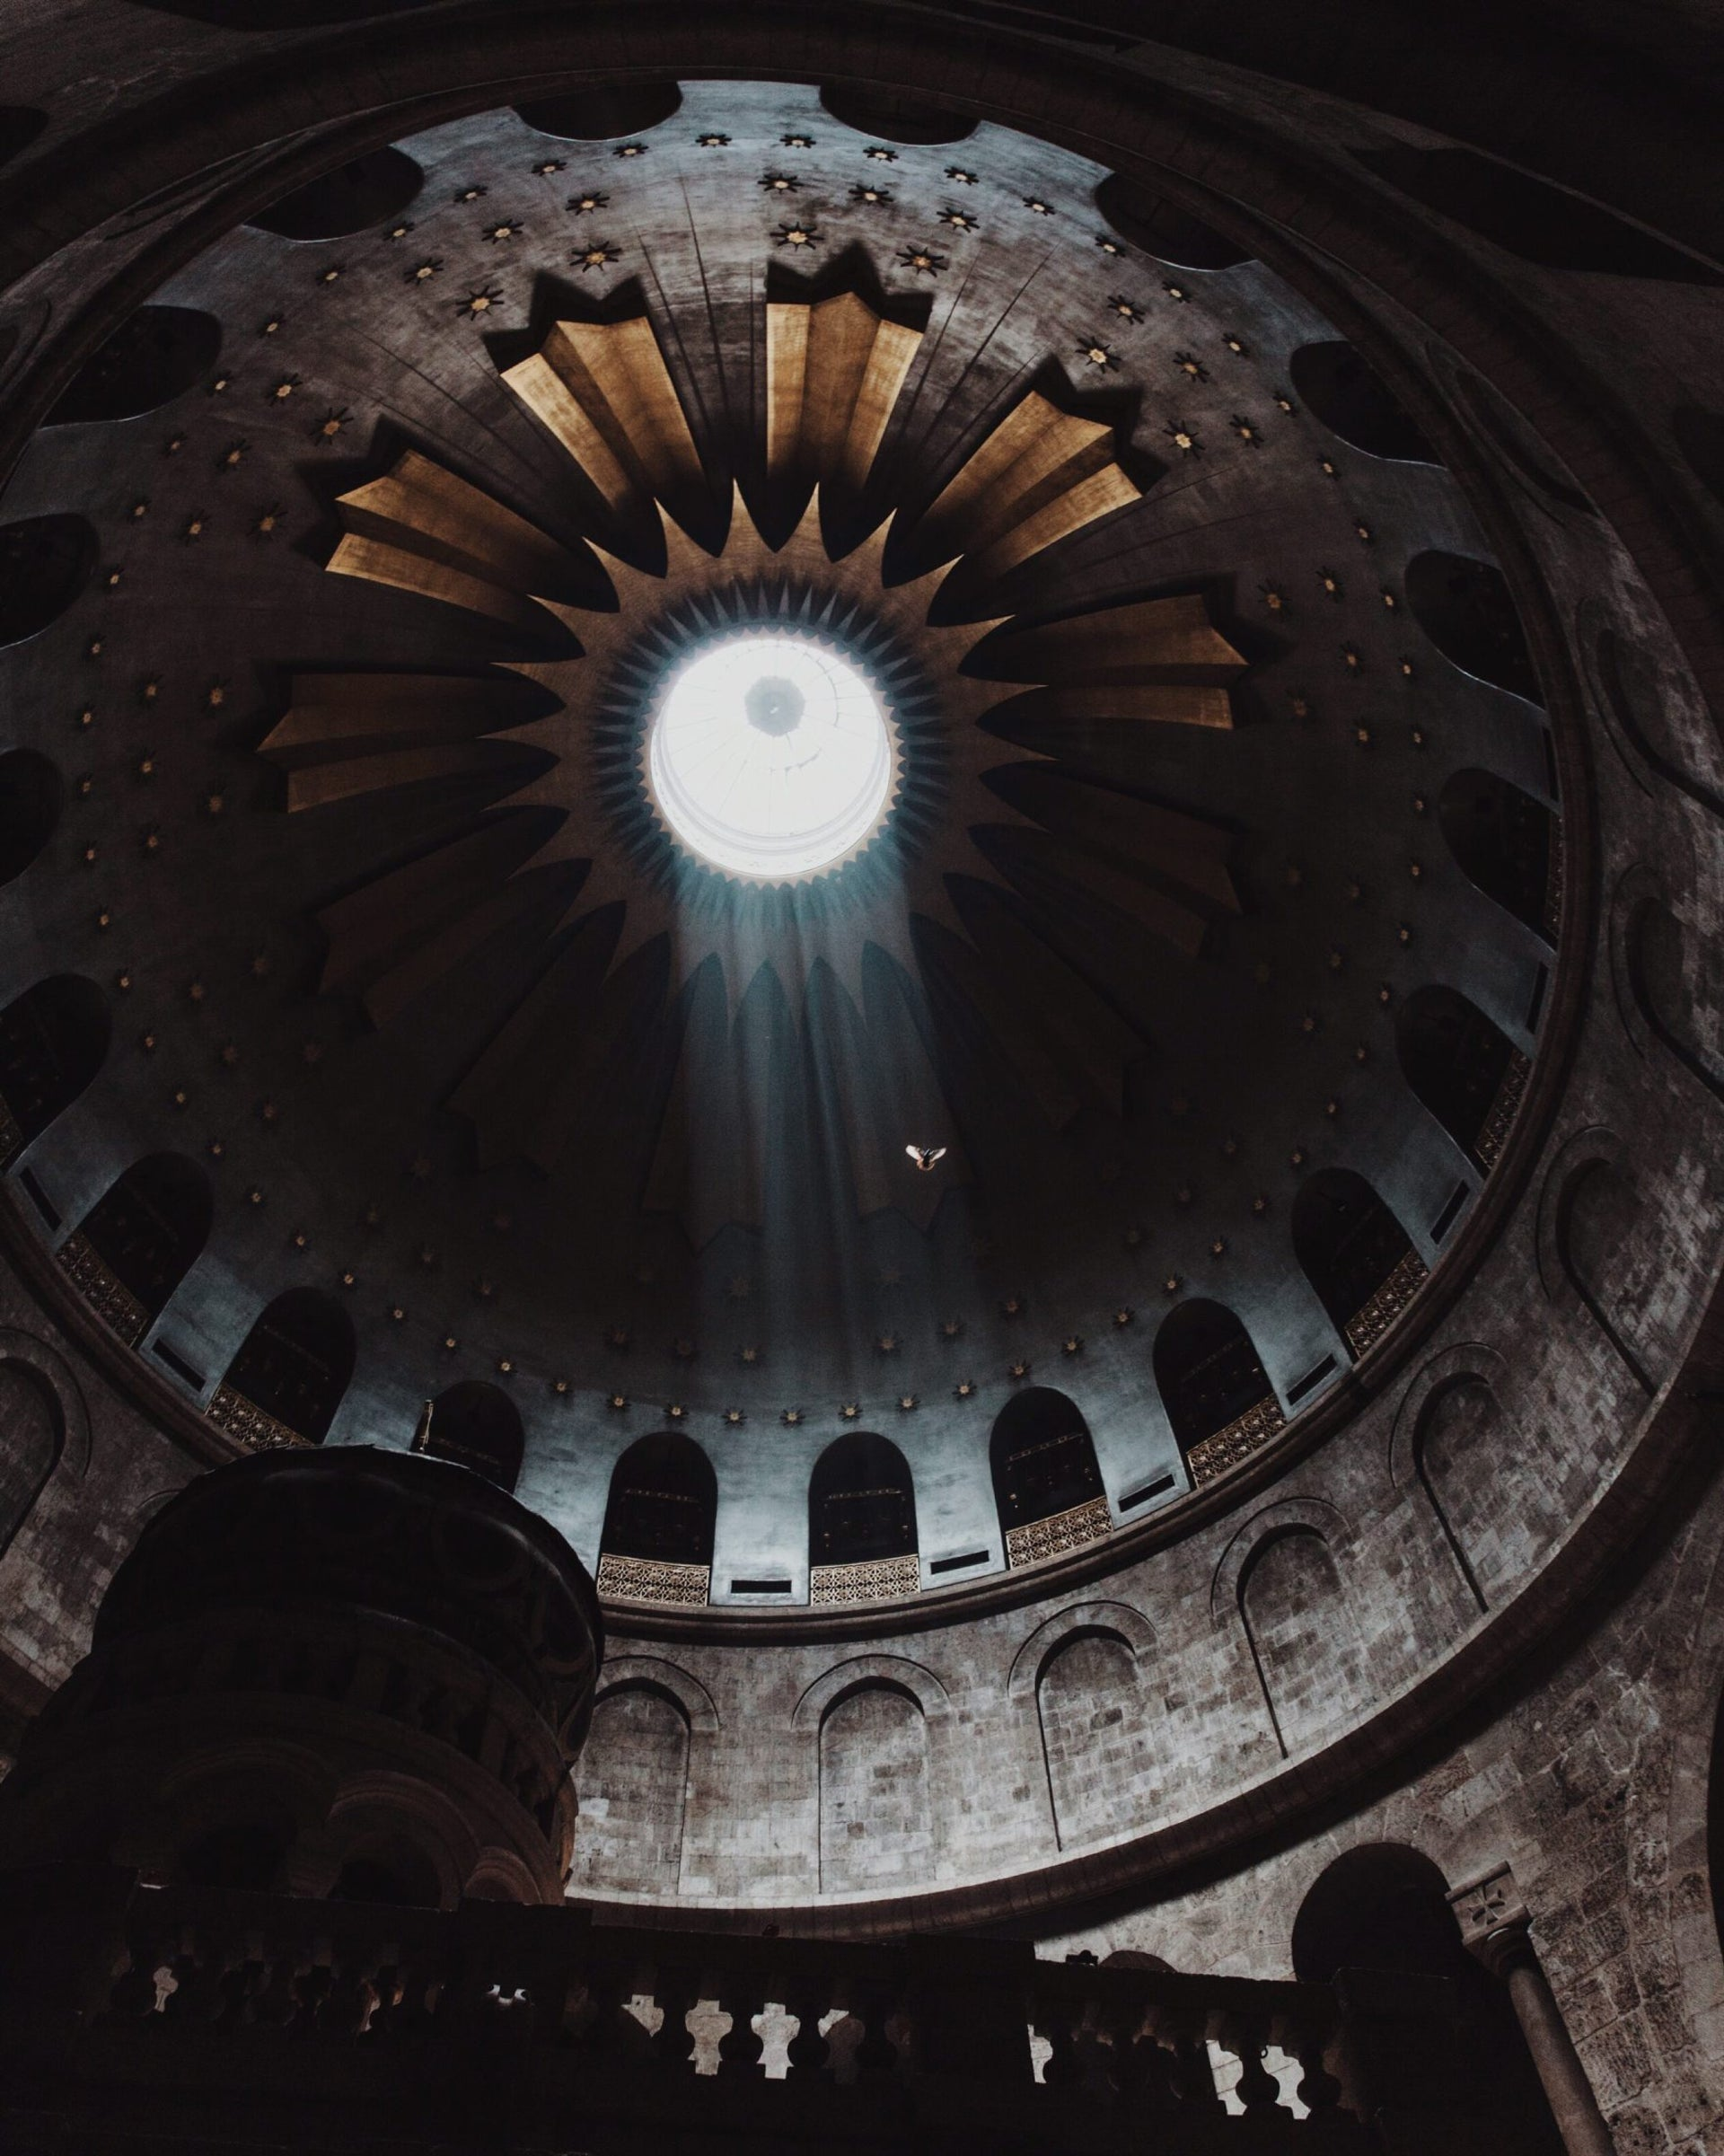 The Church of the Holy Sepulchre in Jerusalem